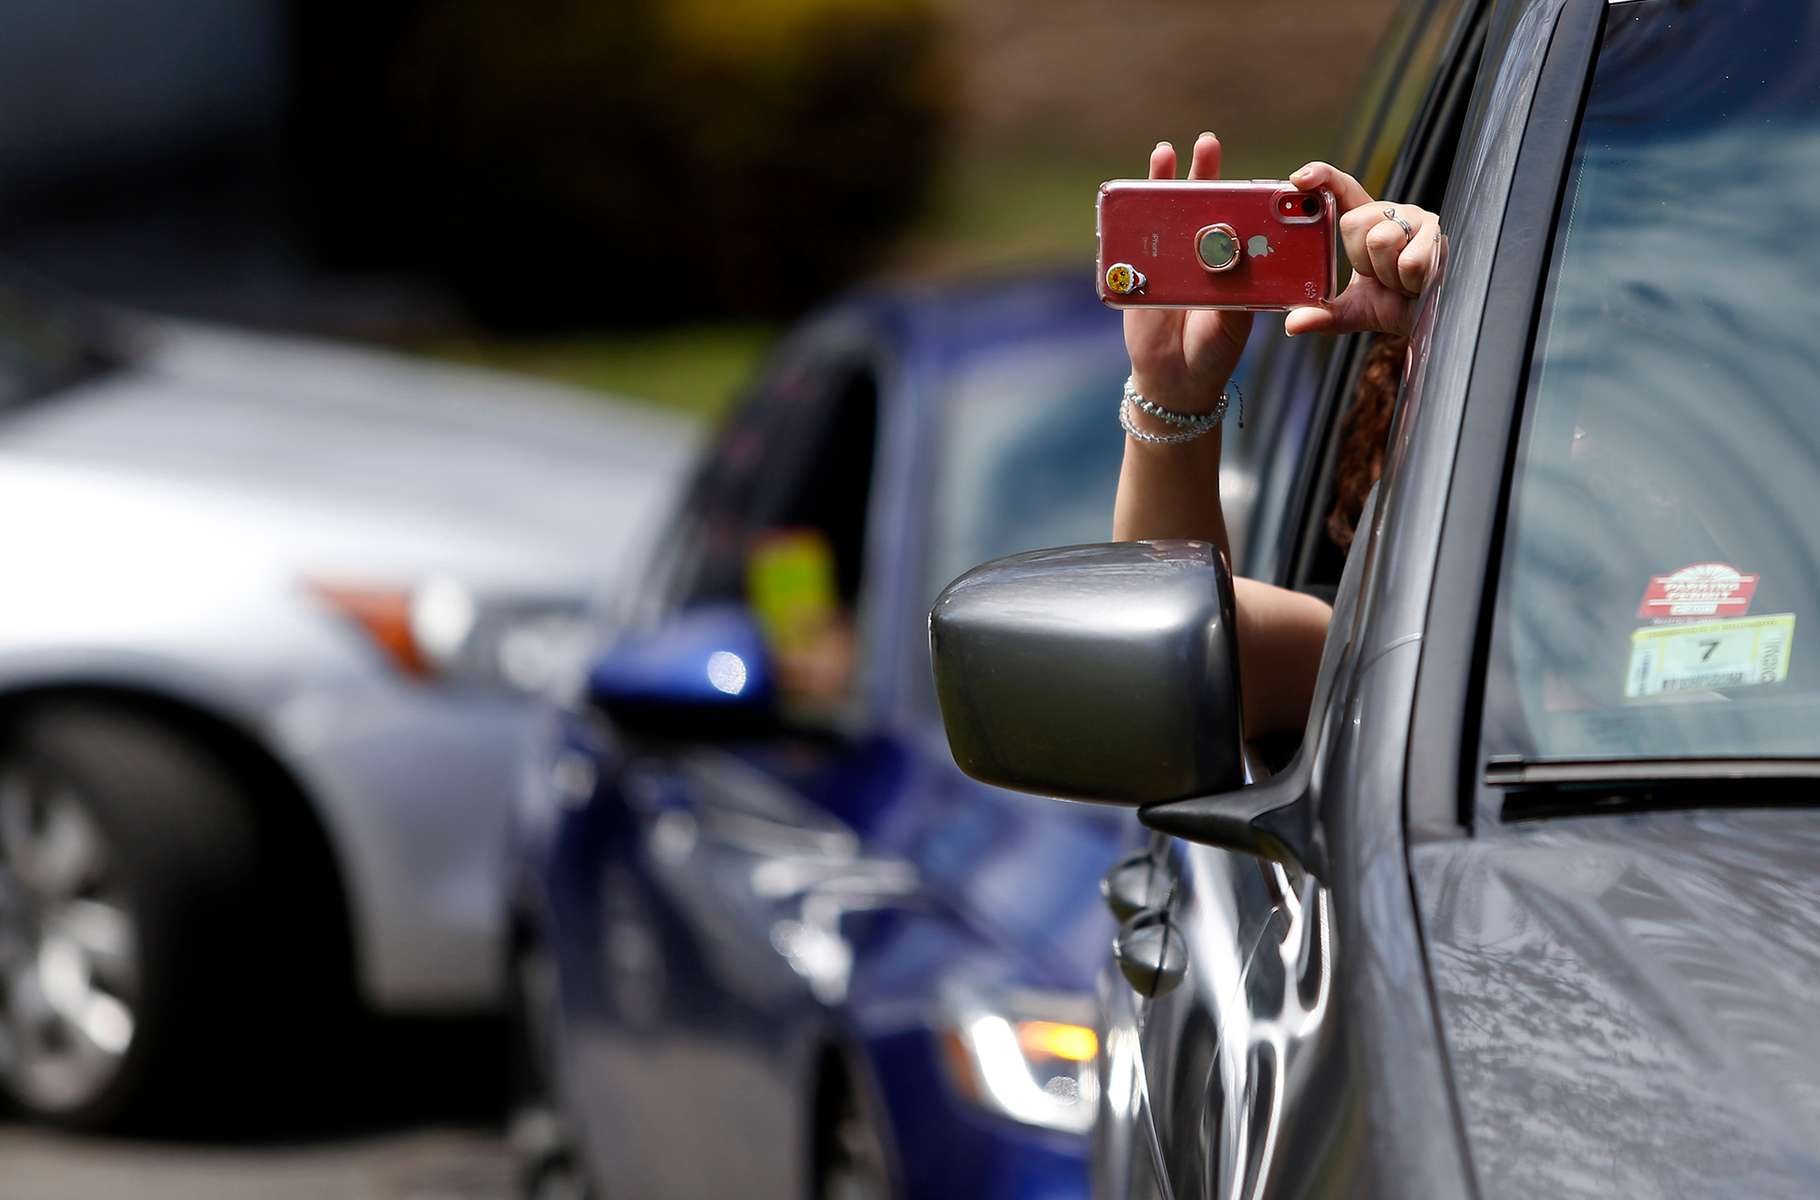 Everett, MA - 4/29/20 - A mourner holds a cell phone out to record as she attends Santos A. Rivas' funeral from inside her car. Due to strict social distancing guidelines only ten people are allowed outside of the car for graveside services at Woodlawn Cemetery in Everett. Friends and family lined three sides of the street surrounding the gravesite to pay their respects to Santos A. Rivas, who passed away from coronavirus or COVID-19. (Jessica Rinaldi/Globe Staff)